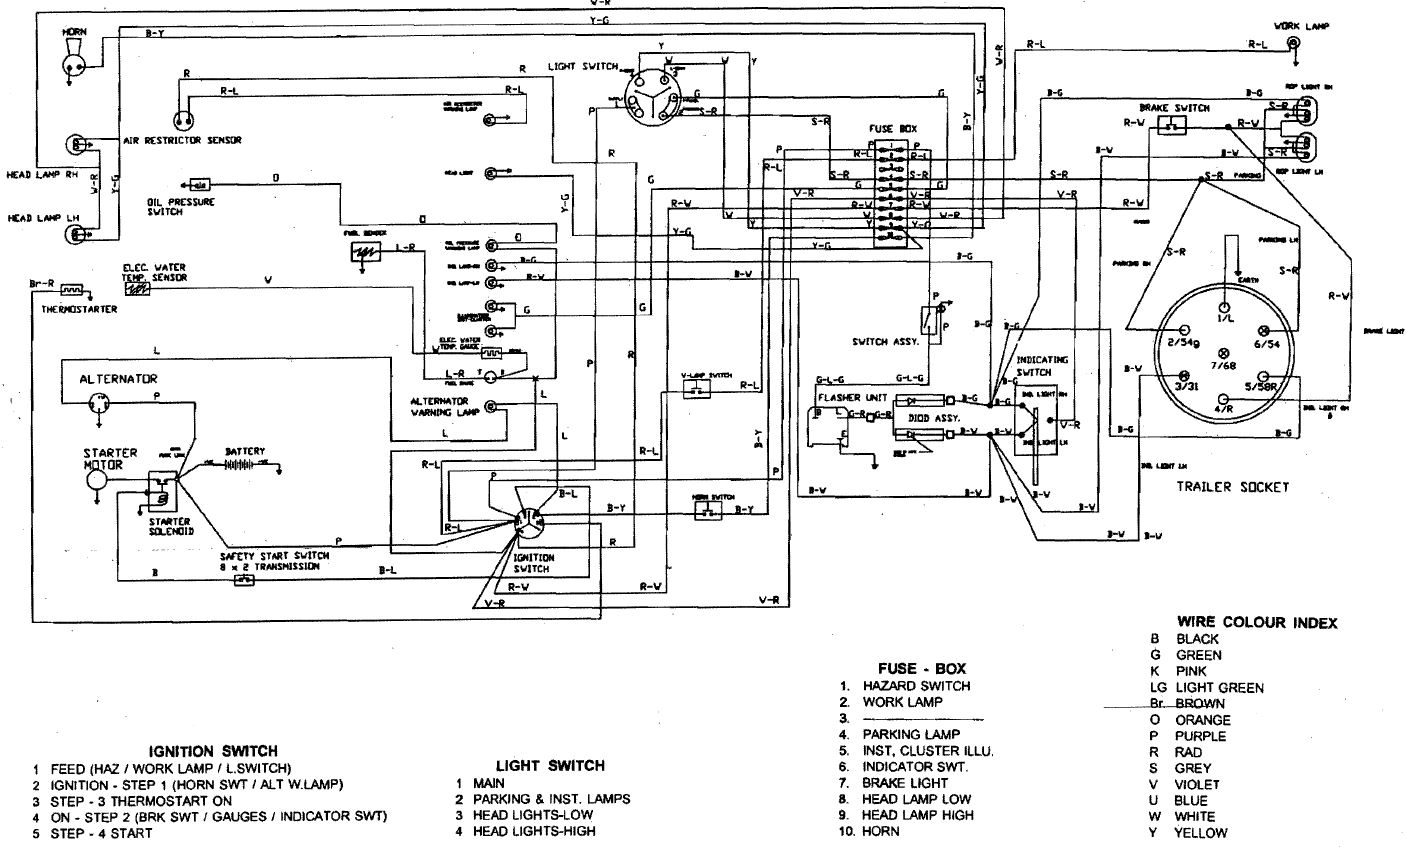 ignition switch wiring diagram rh tractorbynet com